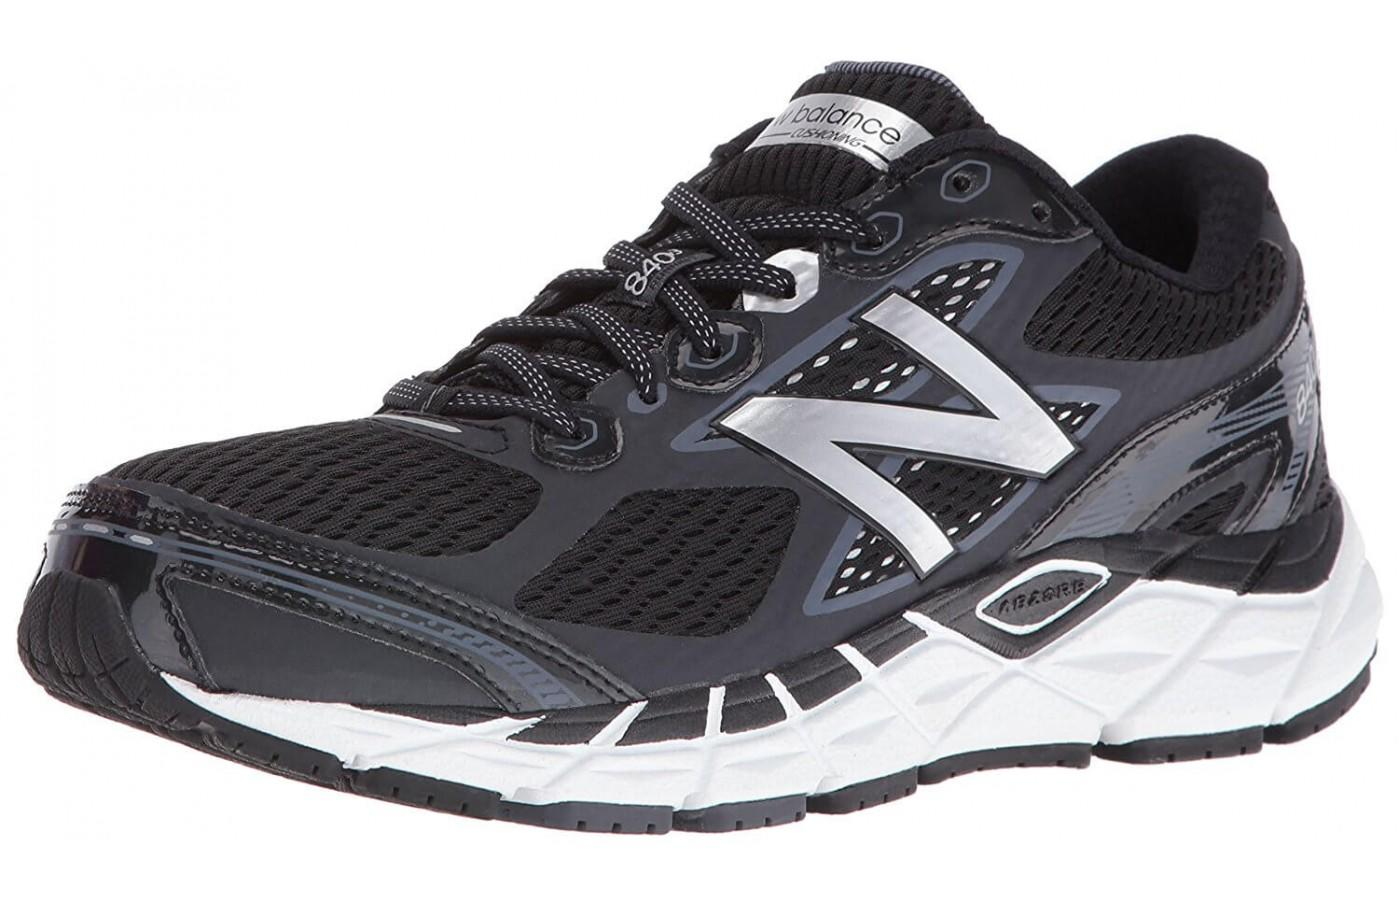 The New Balance 840 v3 is a good shoe runners, walkers and people on their feet allday